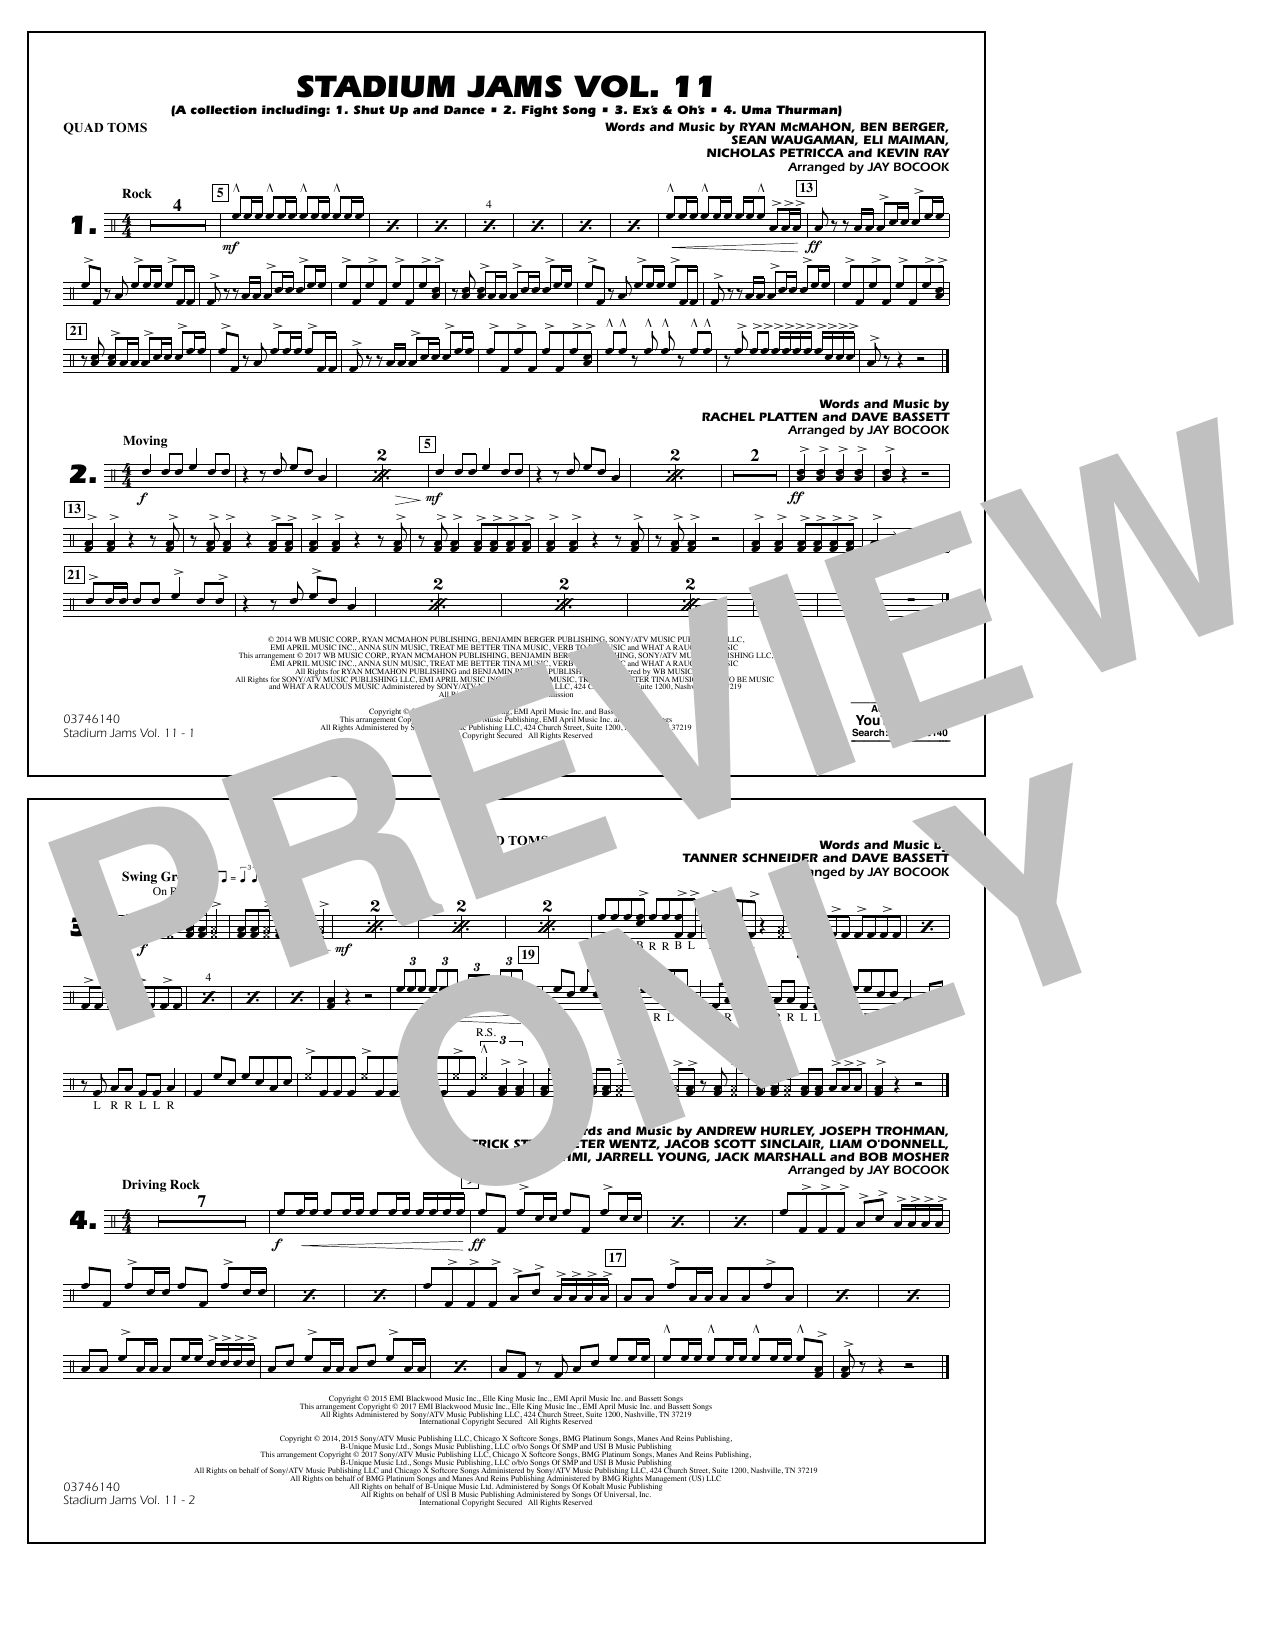 Stadium Jams Volume 11 - Quad Toms Sheet Music